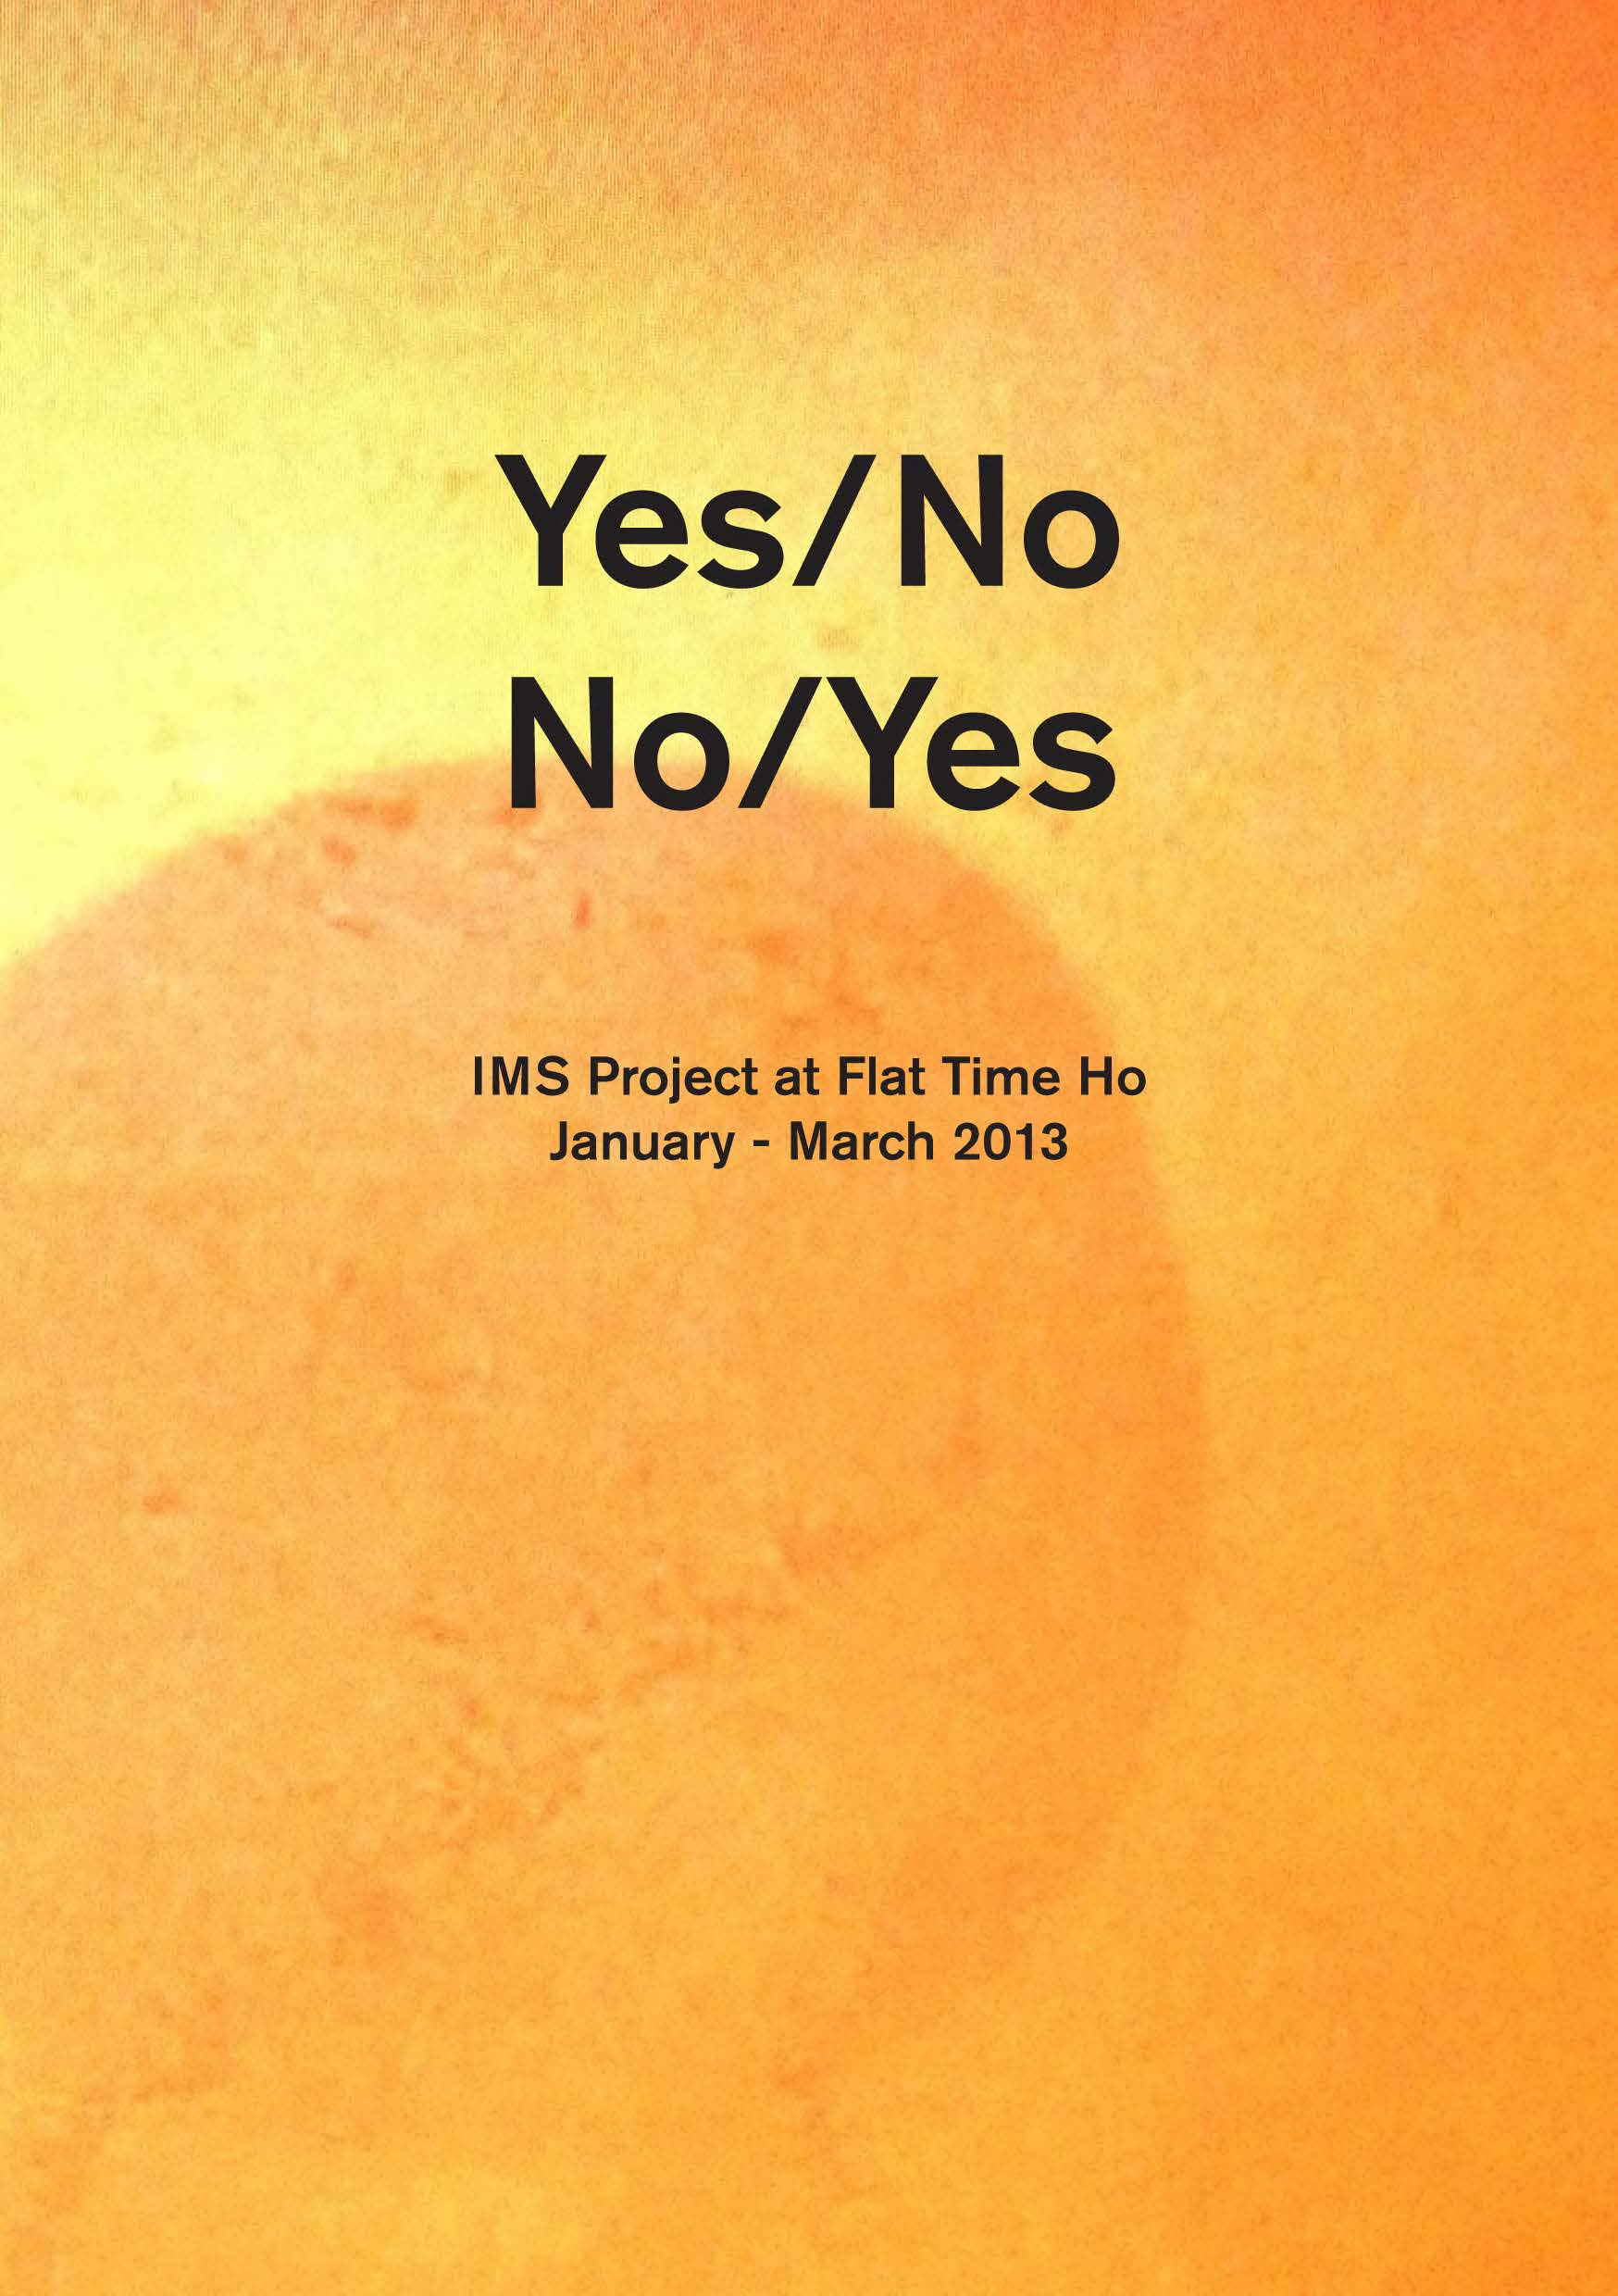 Yes/No publication